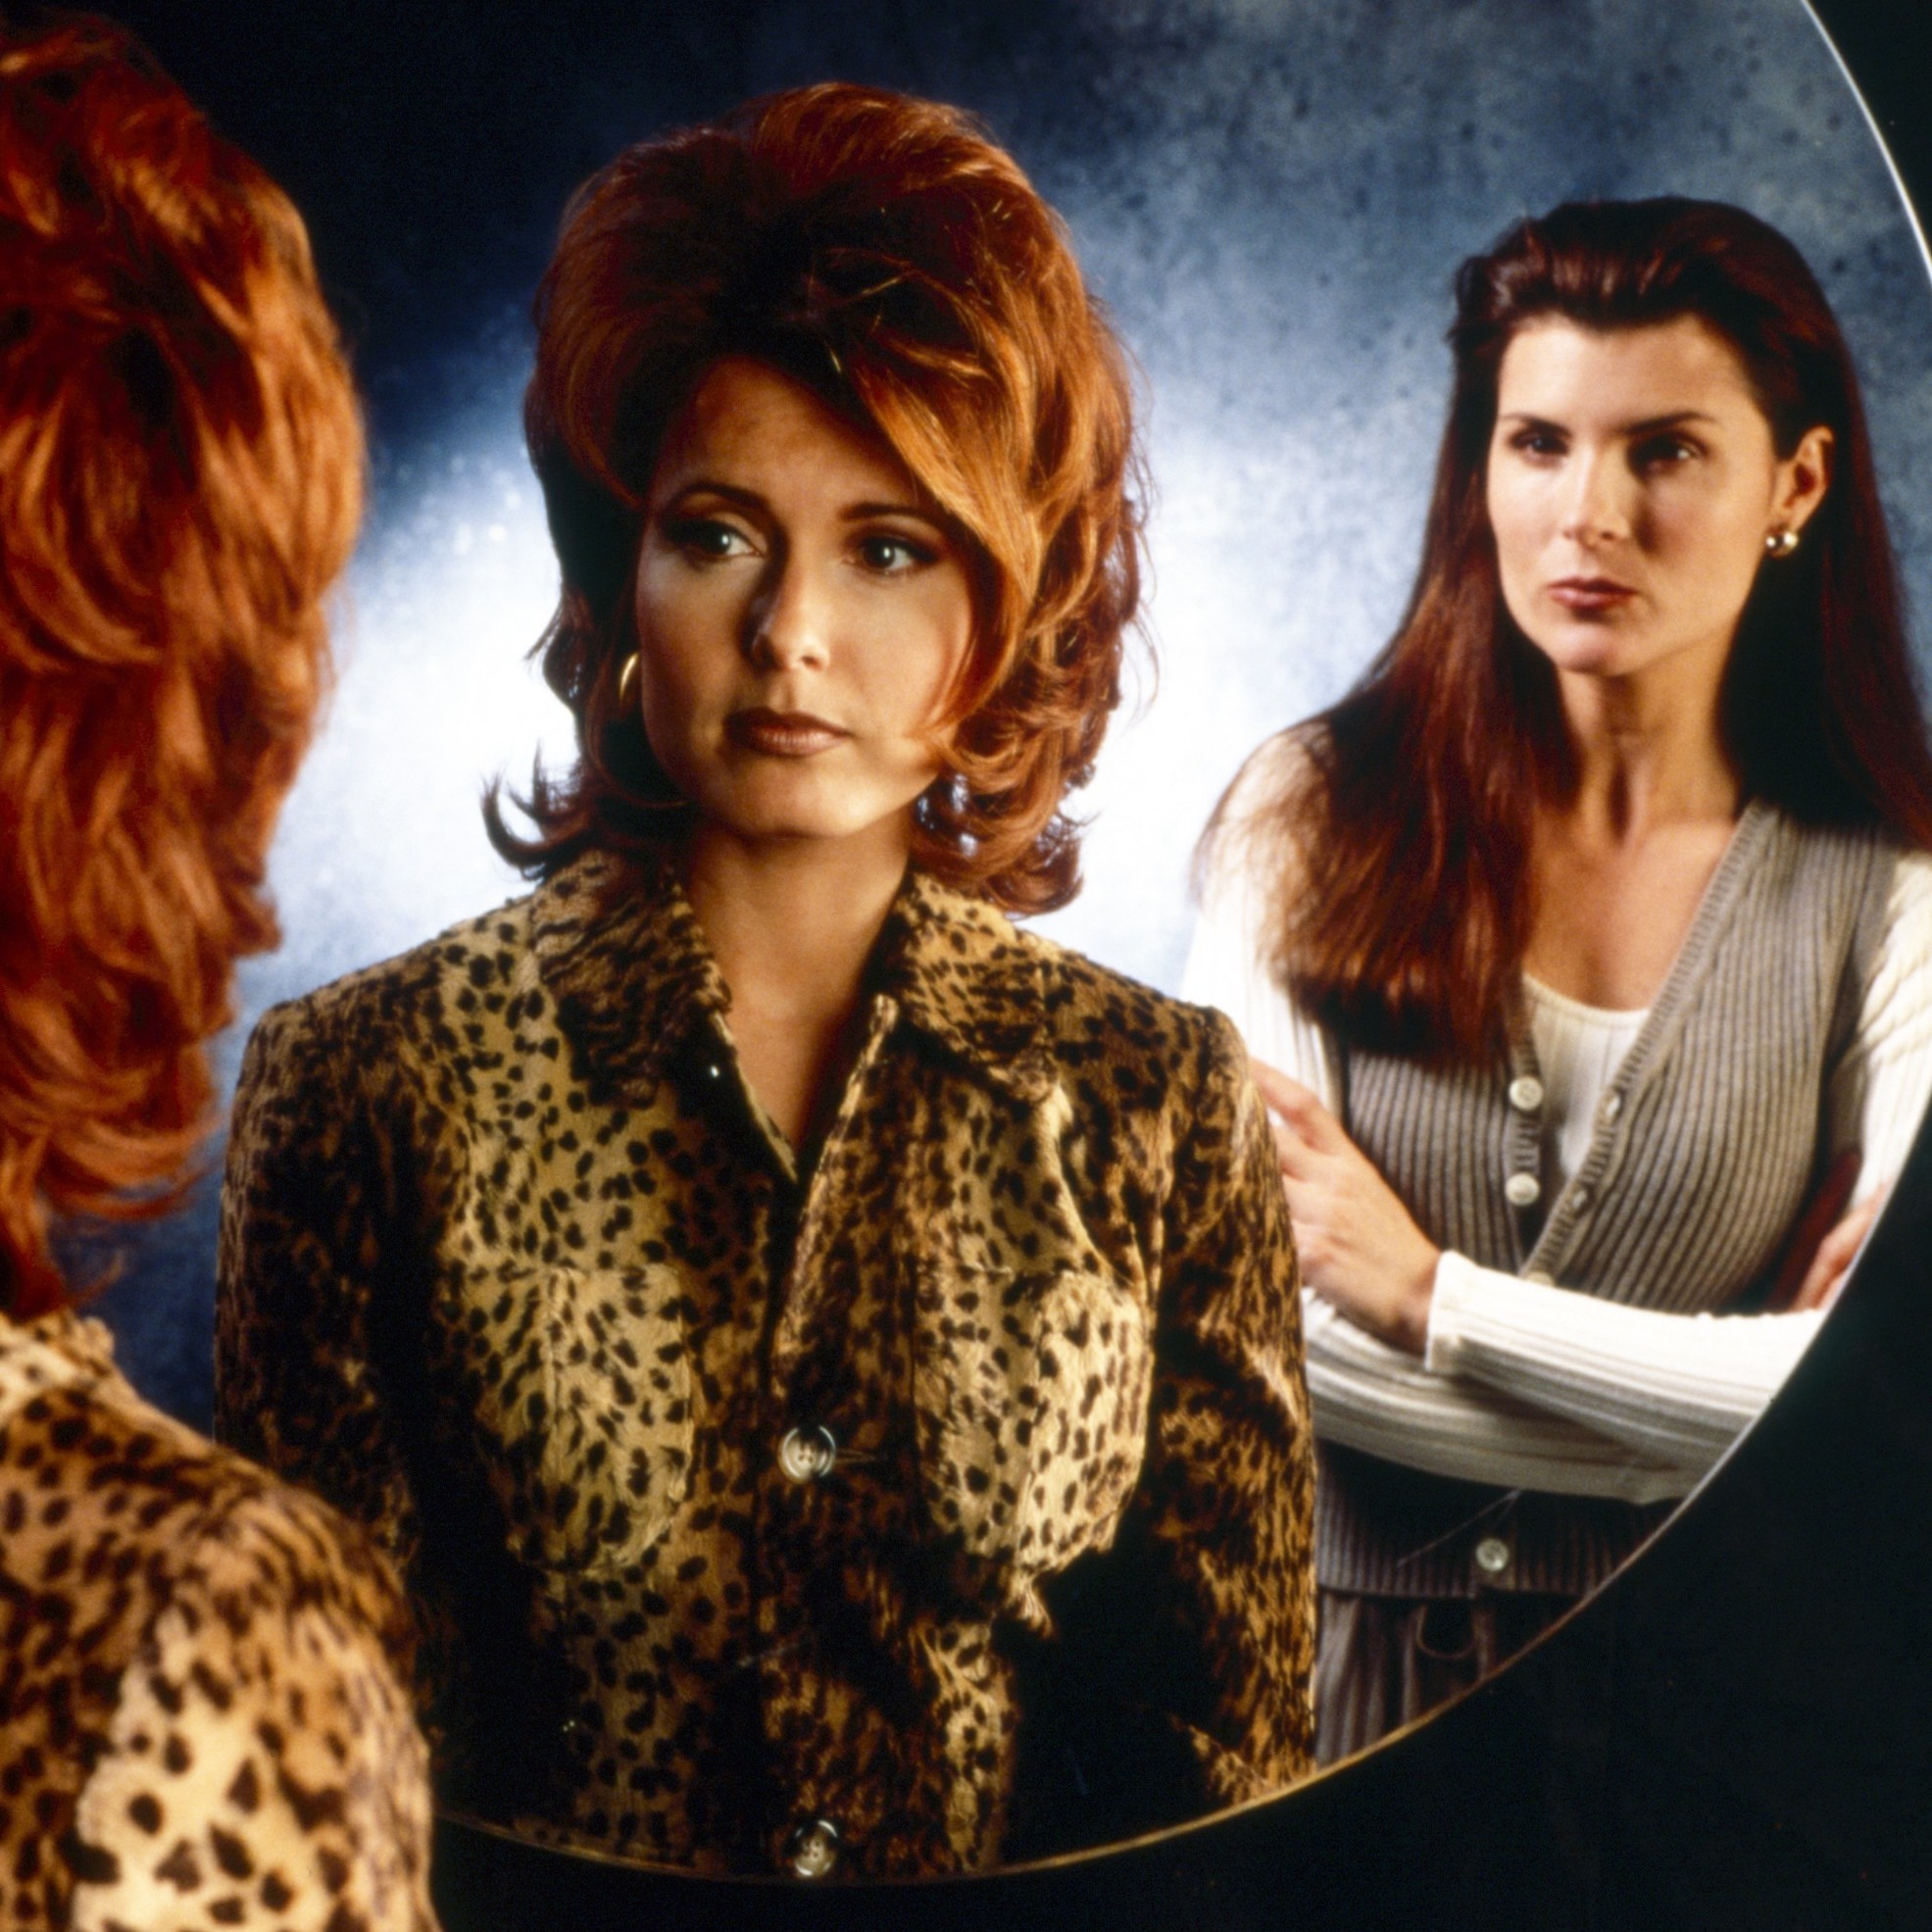 lauren sheila THE BOLD AND THE BEAUTIFUL, from left: Tracey E. Bregman, Kimberlin Brown, 1990s, 1987– . ph: Monty Brinton /© CBS / Courtesy Everett Collection